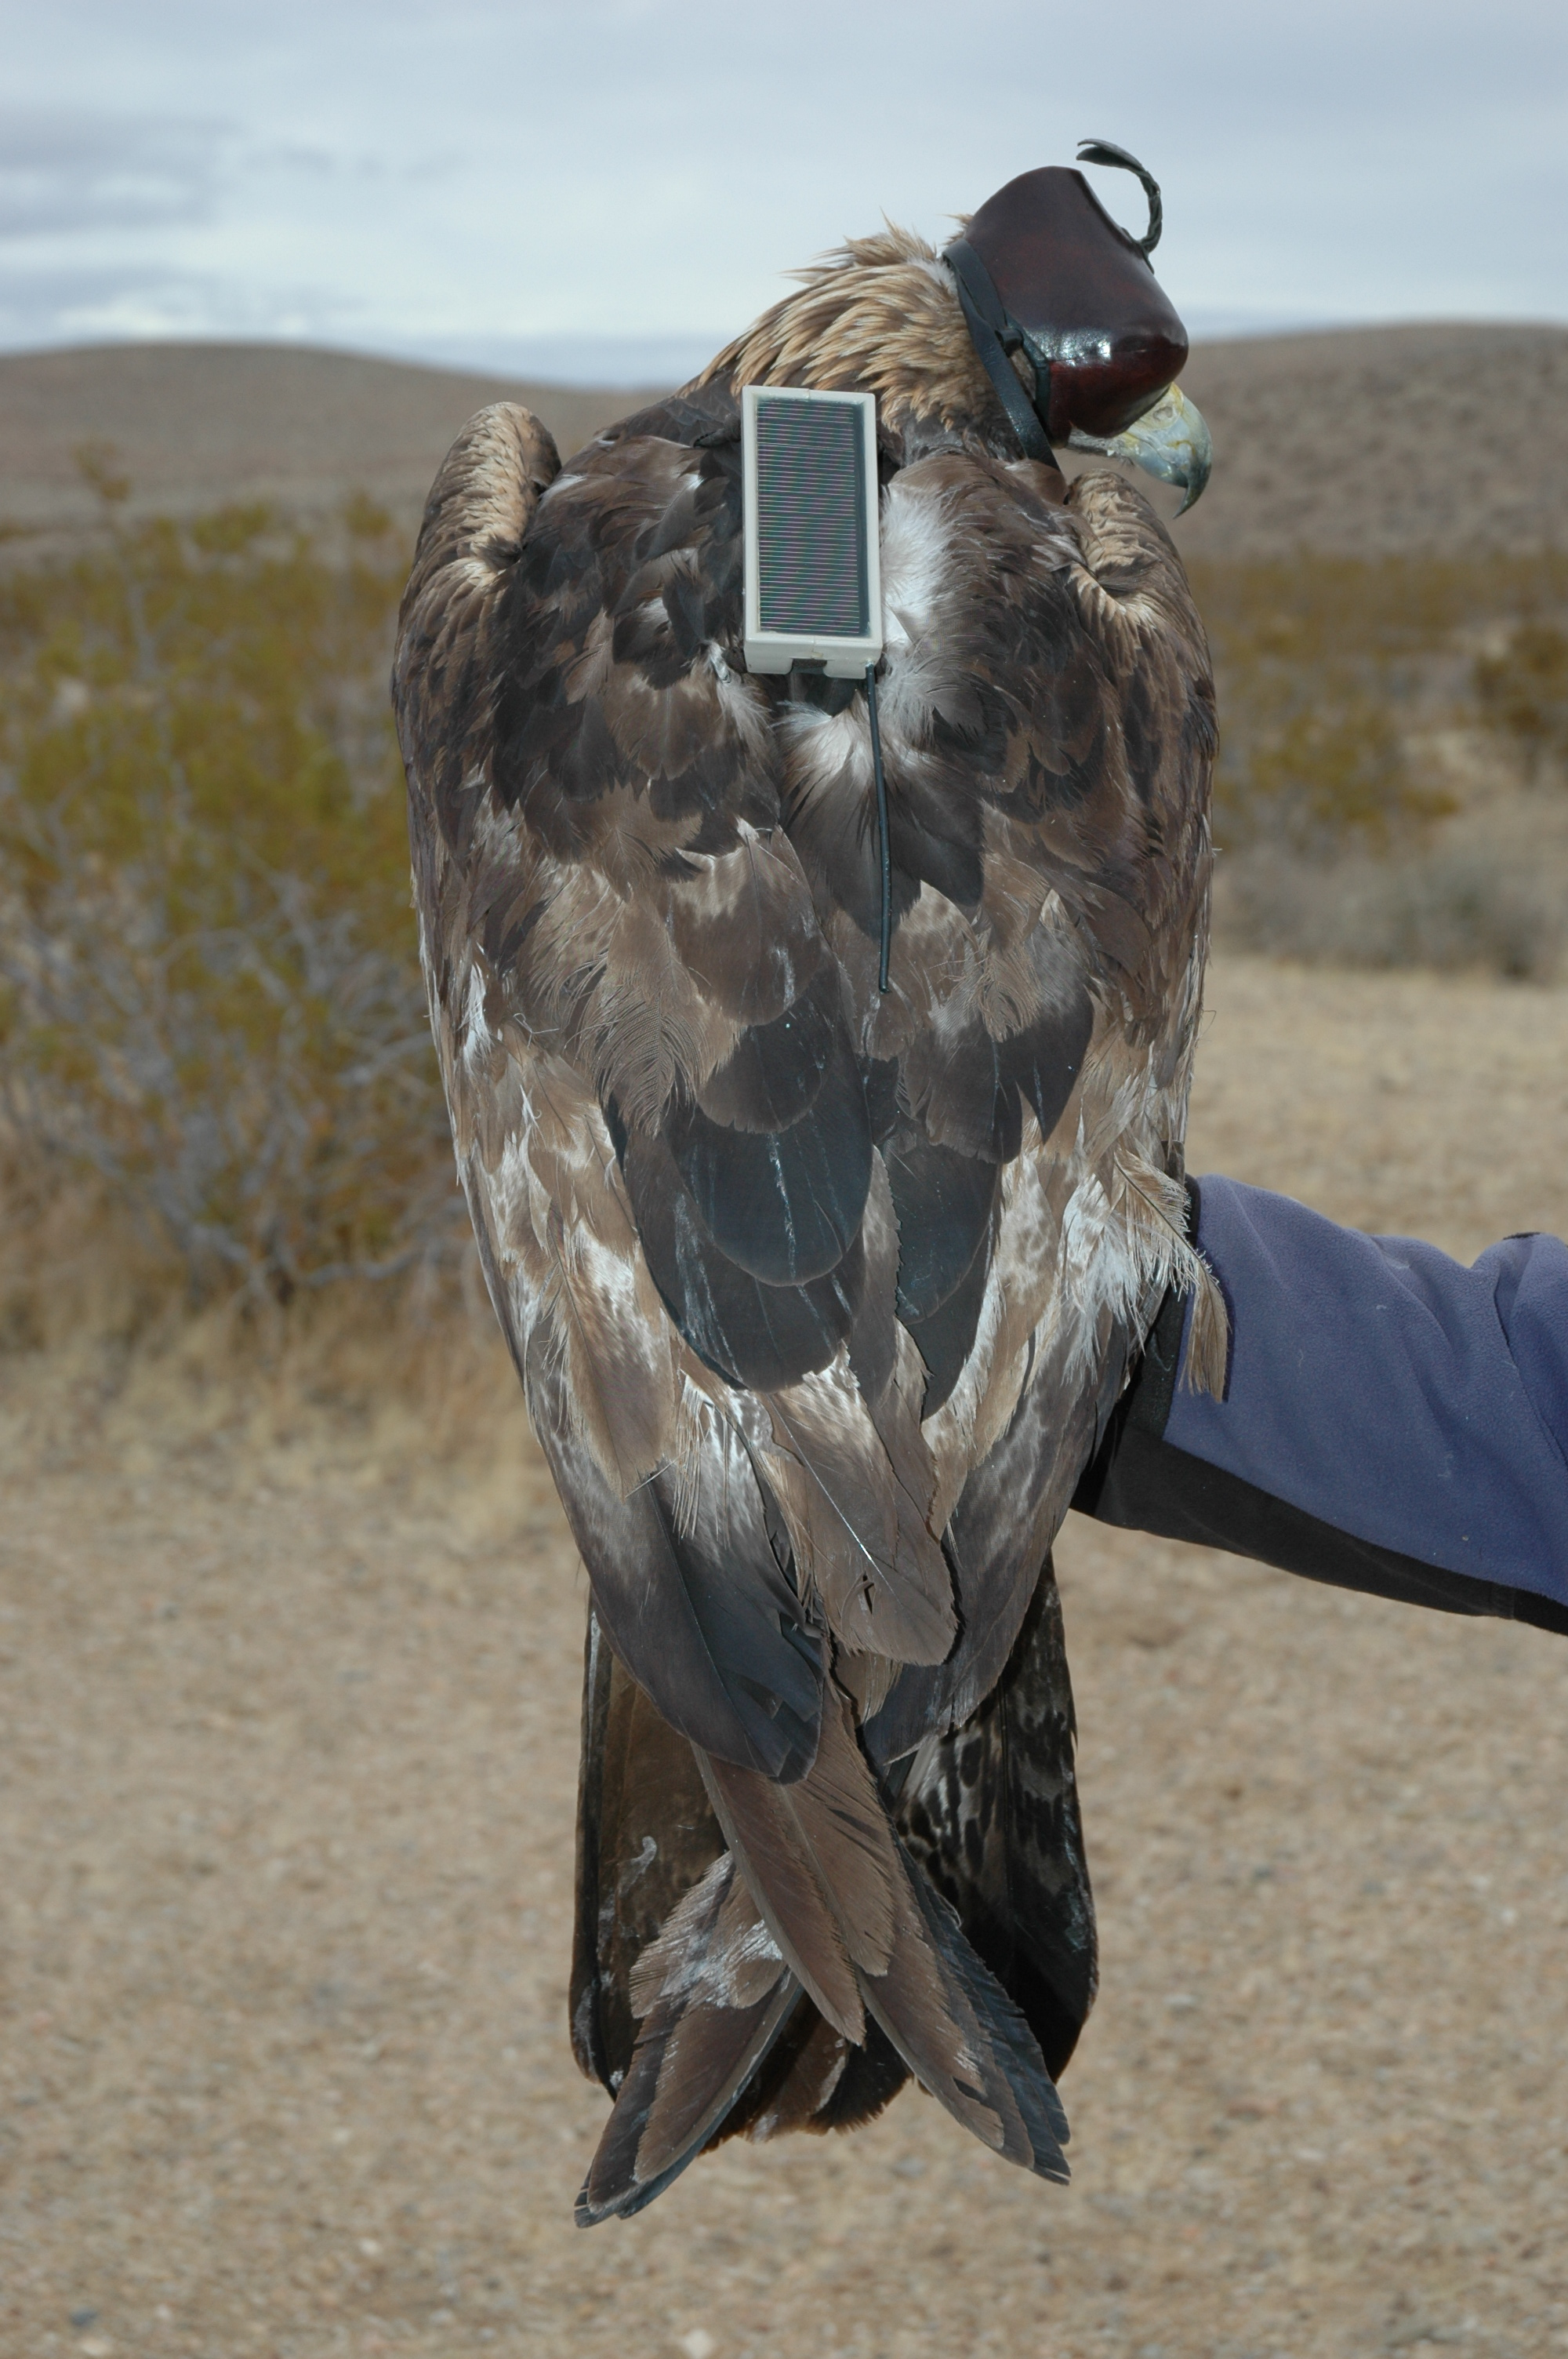 Female golden eagle with GPS-GSM transmitter. From 2012 to 2013, telemetry data were collected from nine eagles outfitted with a backpack holding a GPS-GSM telemetry system. The telemetry system recorded and stored a GPS location every 15 minutes and sent the locations via the GSM network or mobile phone, to a server once per day.